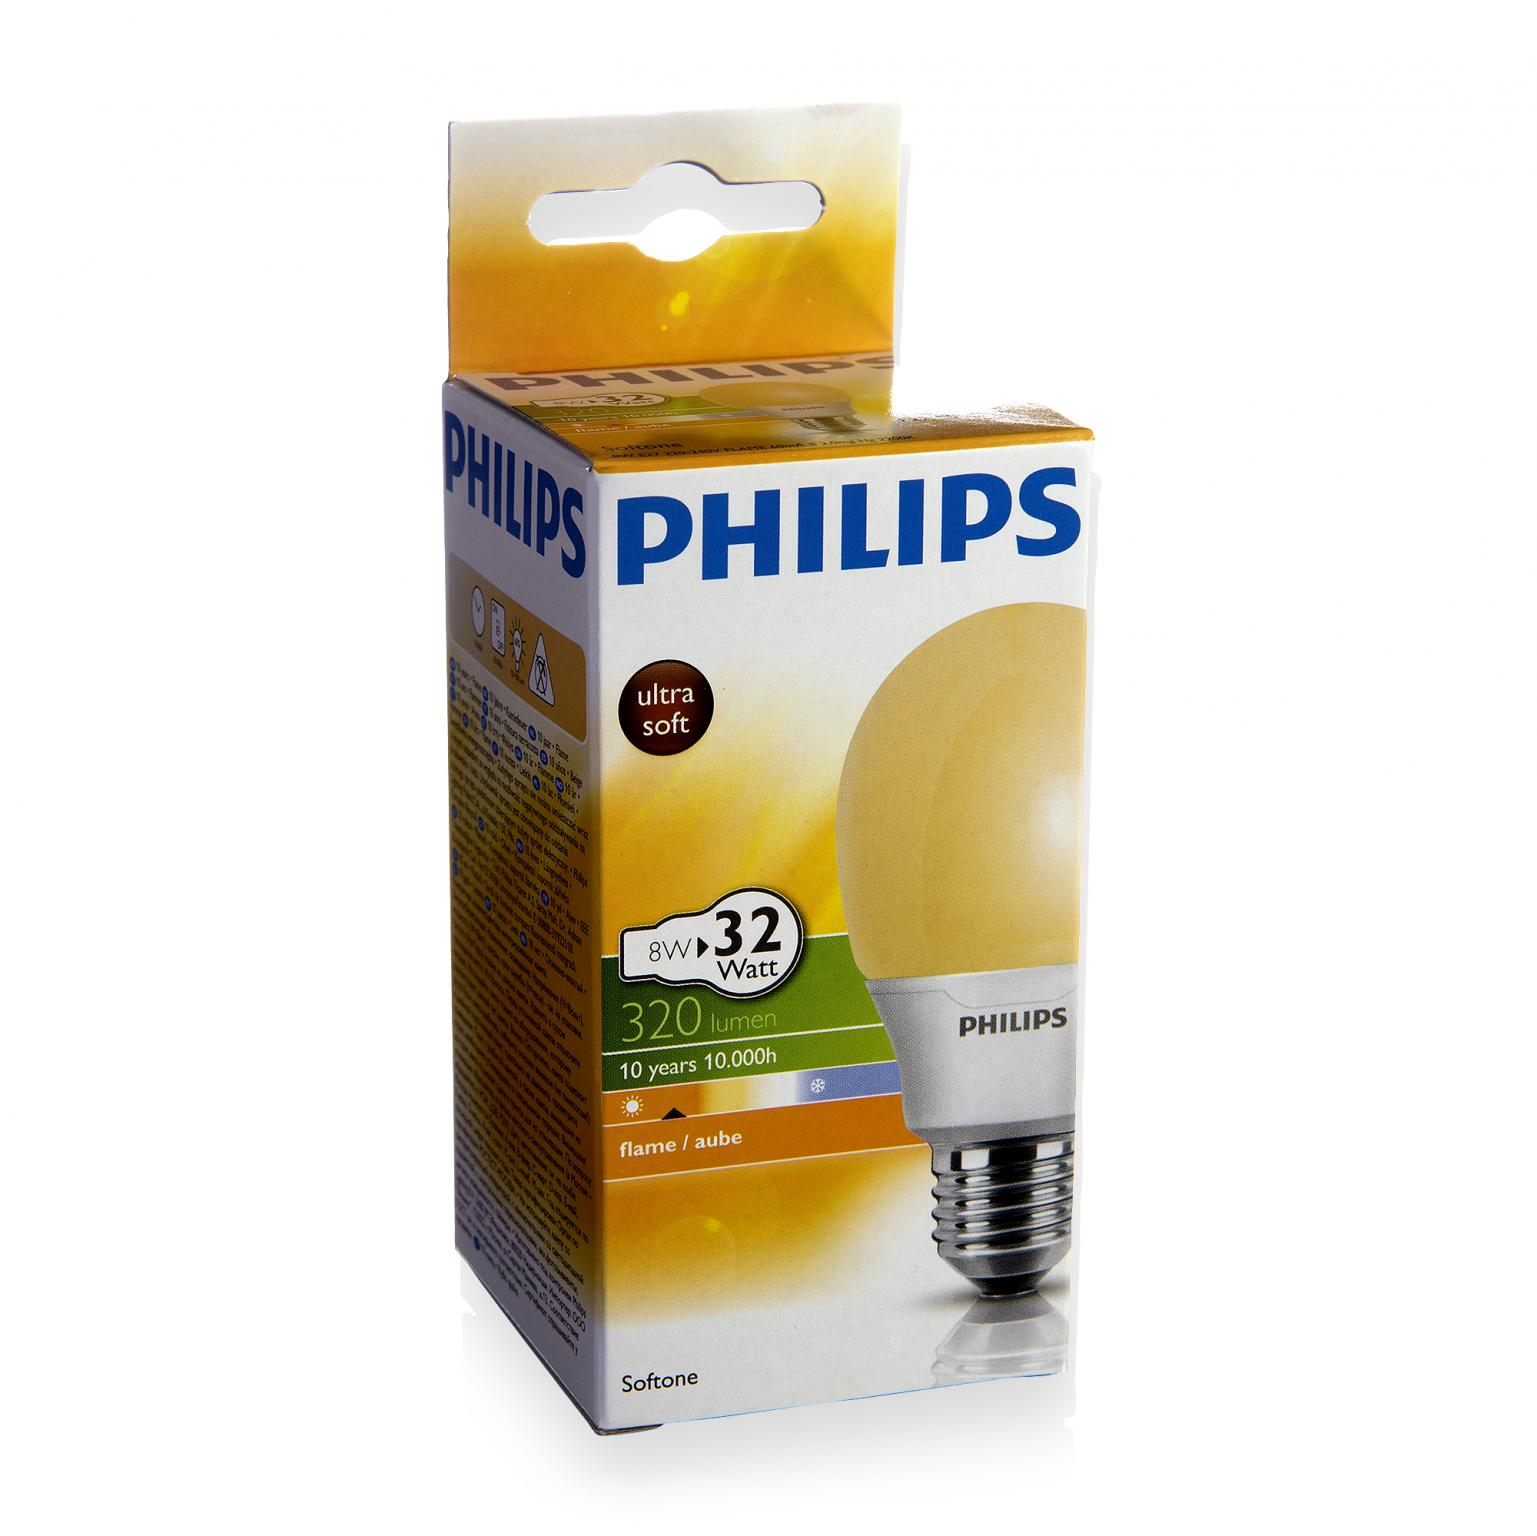 Spaarlamp E27 Spaarlamp E27 8w 320lm Classic Extra Warm Licht Uitvoering